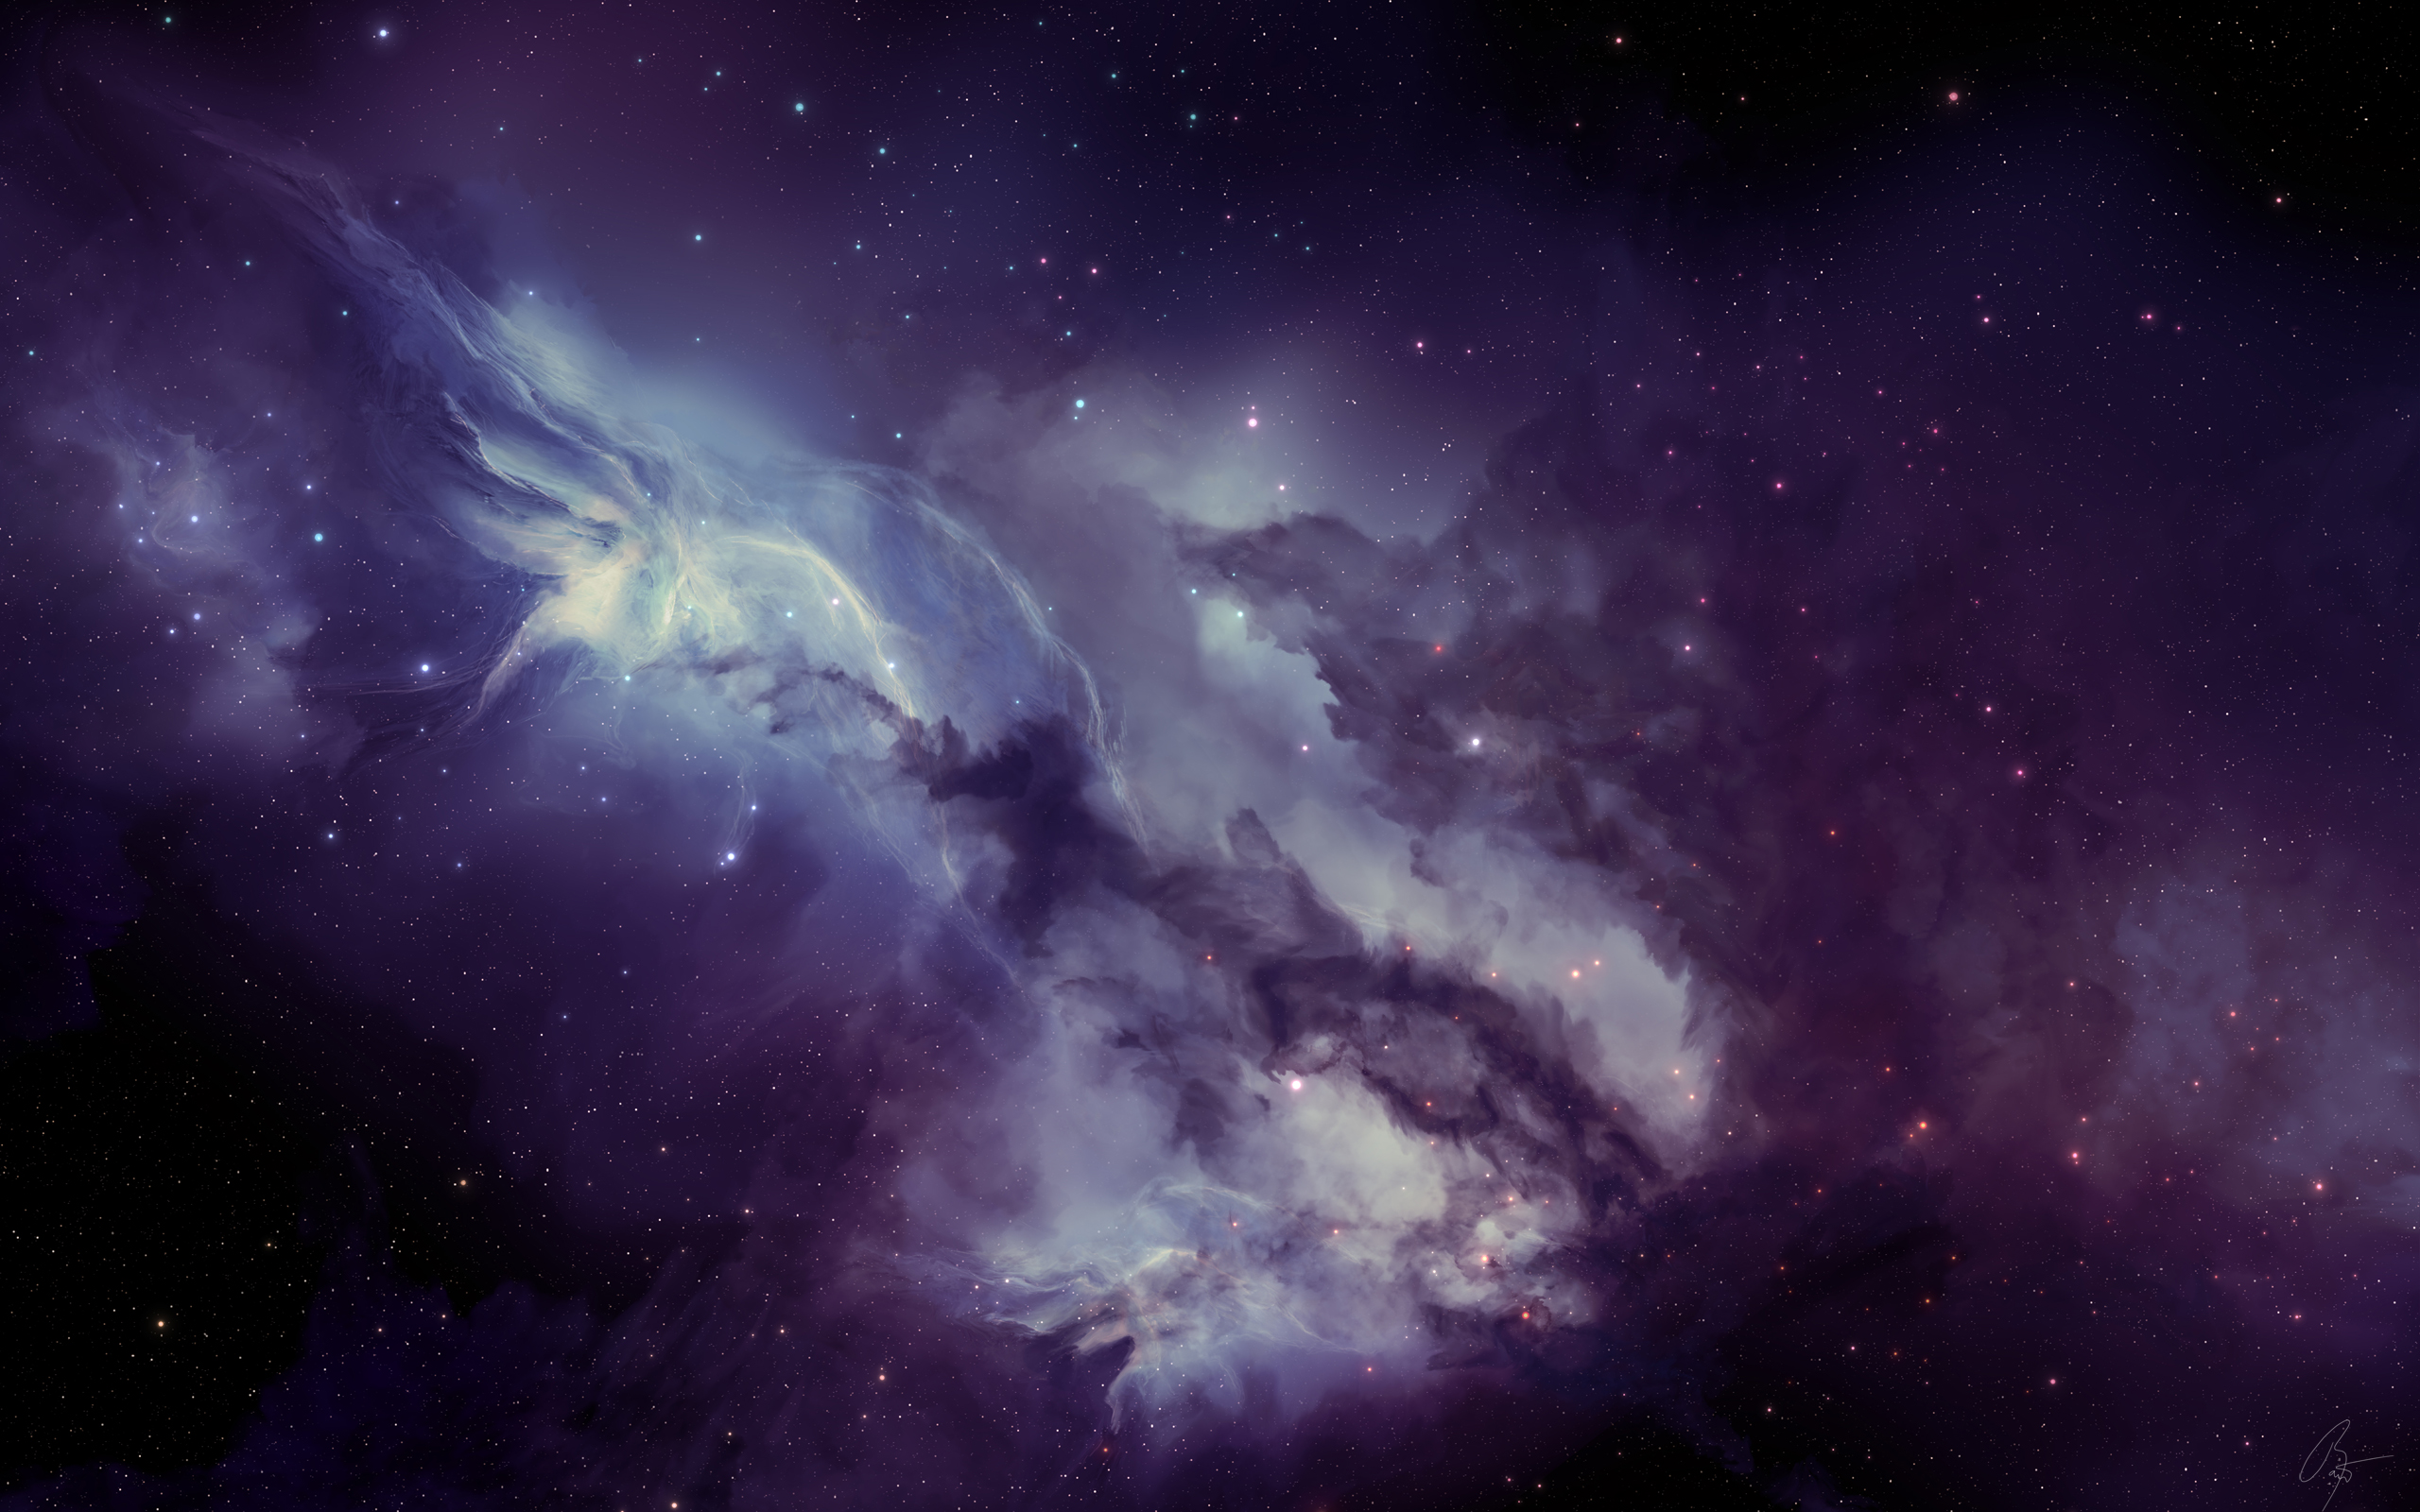 Galaxy Wallpaper Tumblr 2560x1600